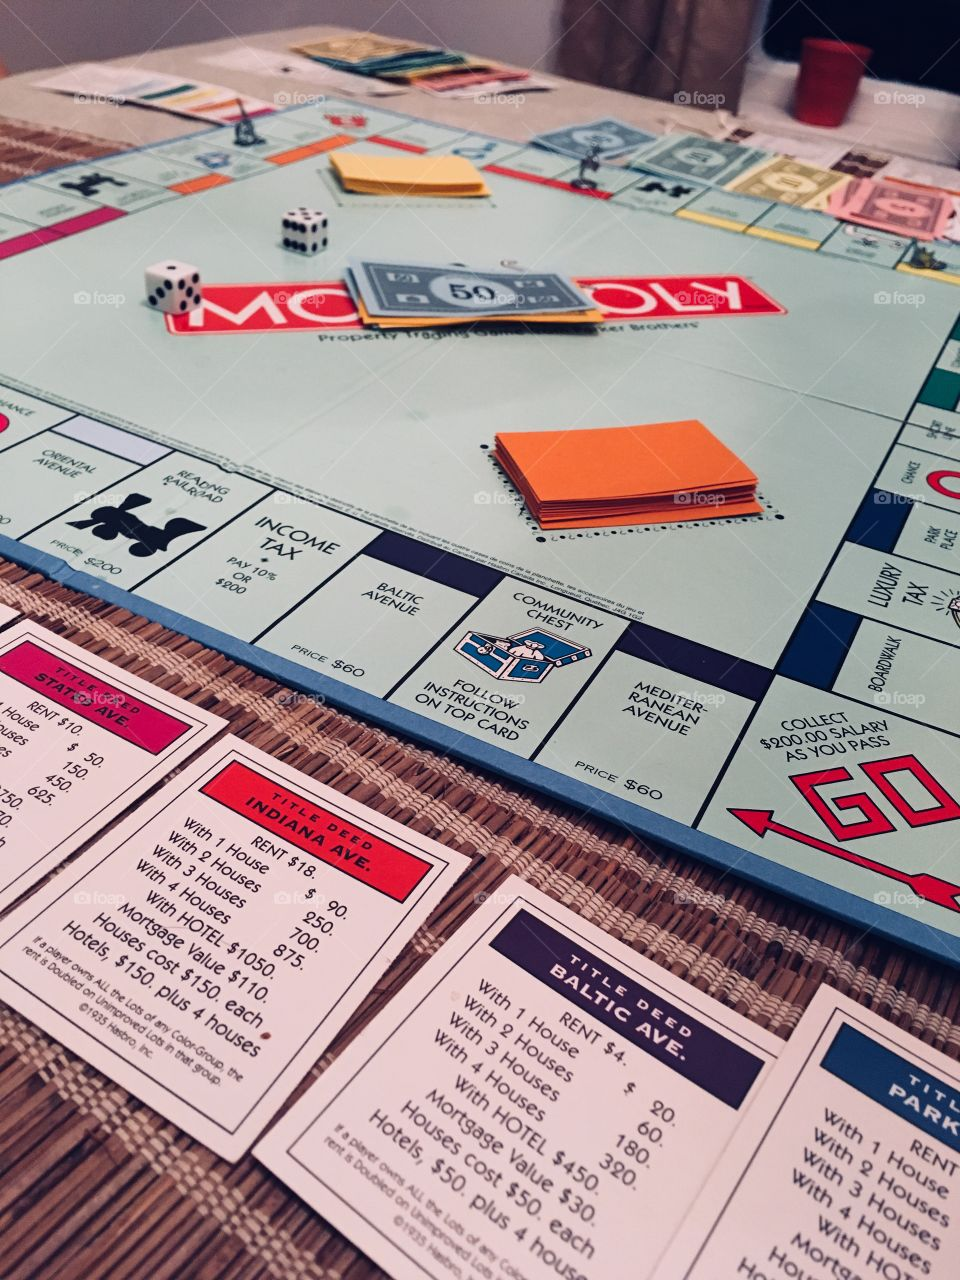 Monopoly board game in play. Dice, Monopoly money, chance cards, property cards laid out. Game night.